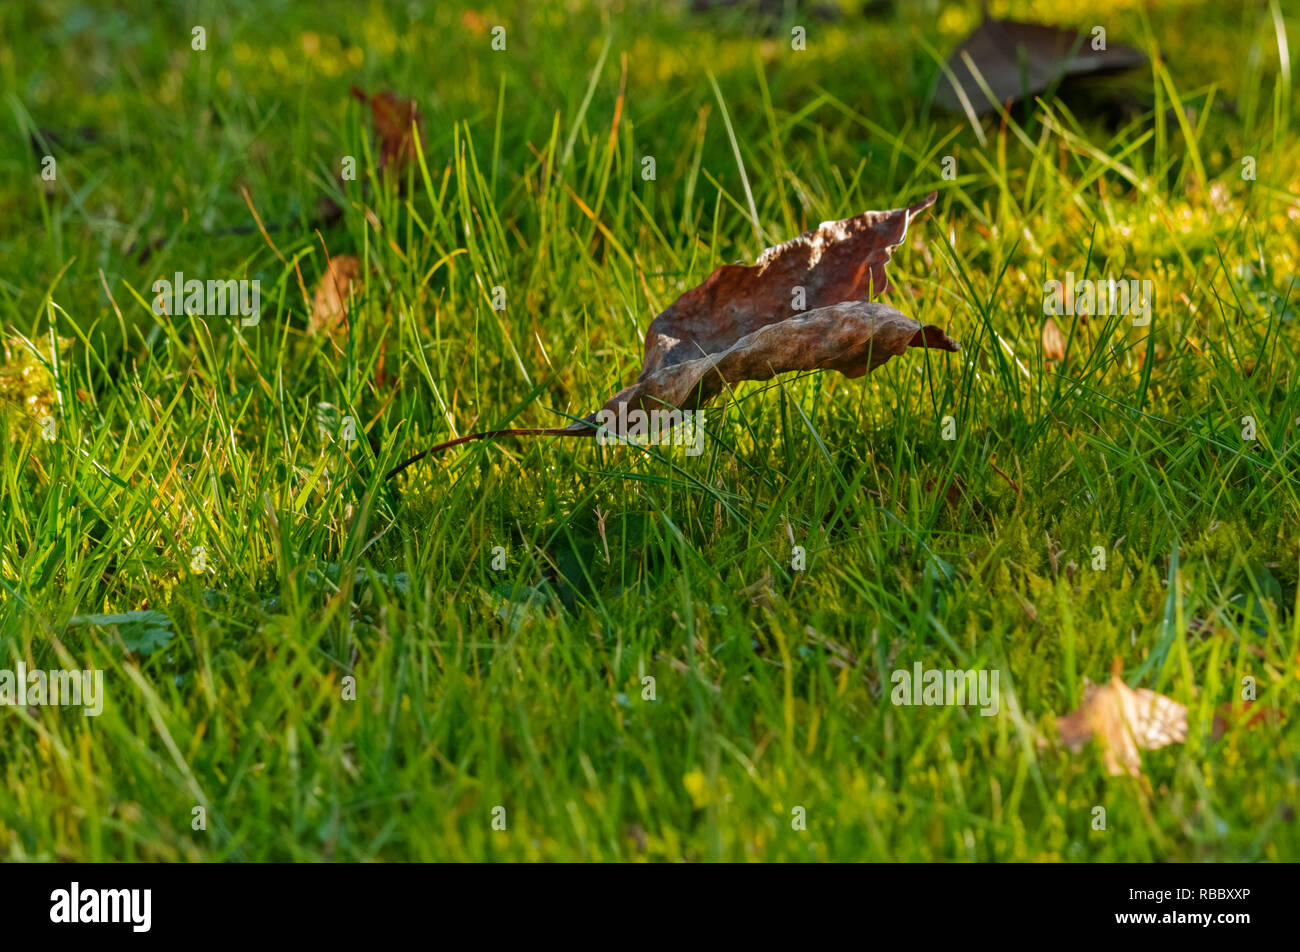 One dry leaf on a green field , bright grass and moss in a sunny day - Stock Image